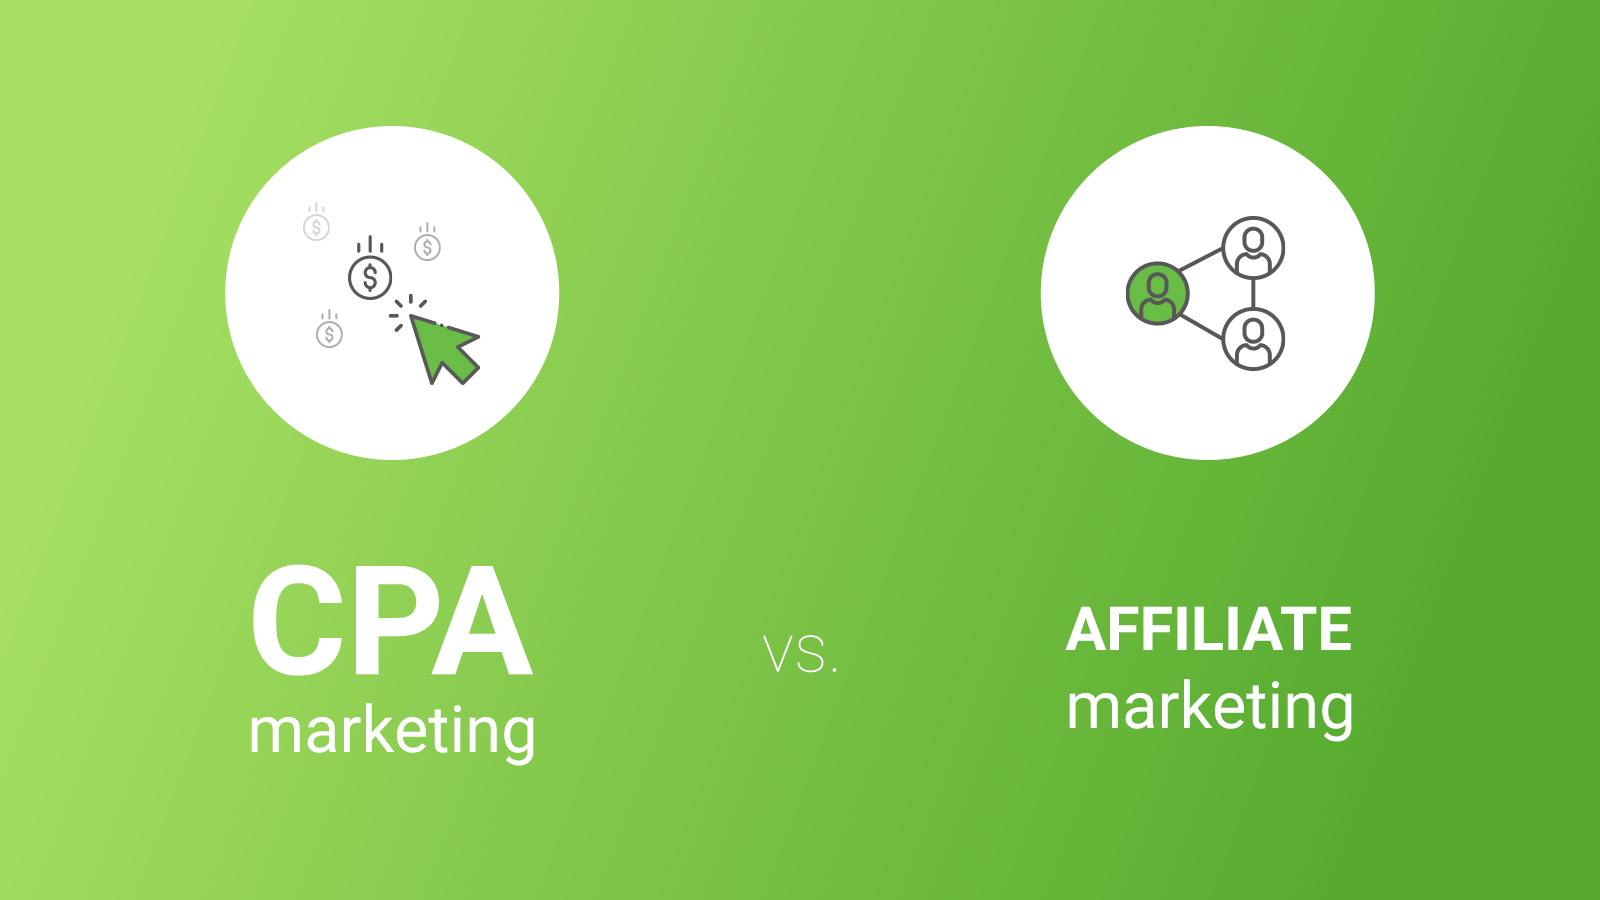 CPA Marketing vs Affiliate Marketing